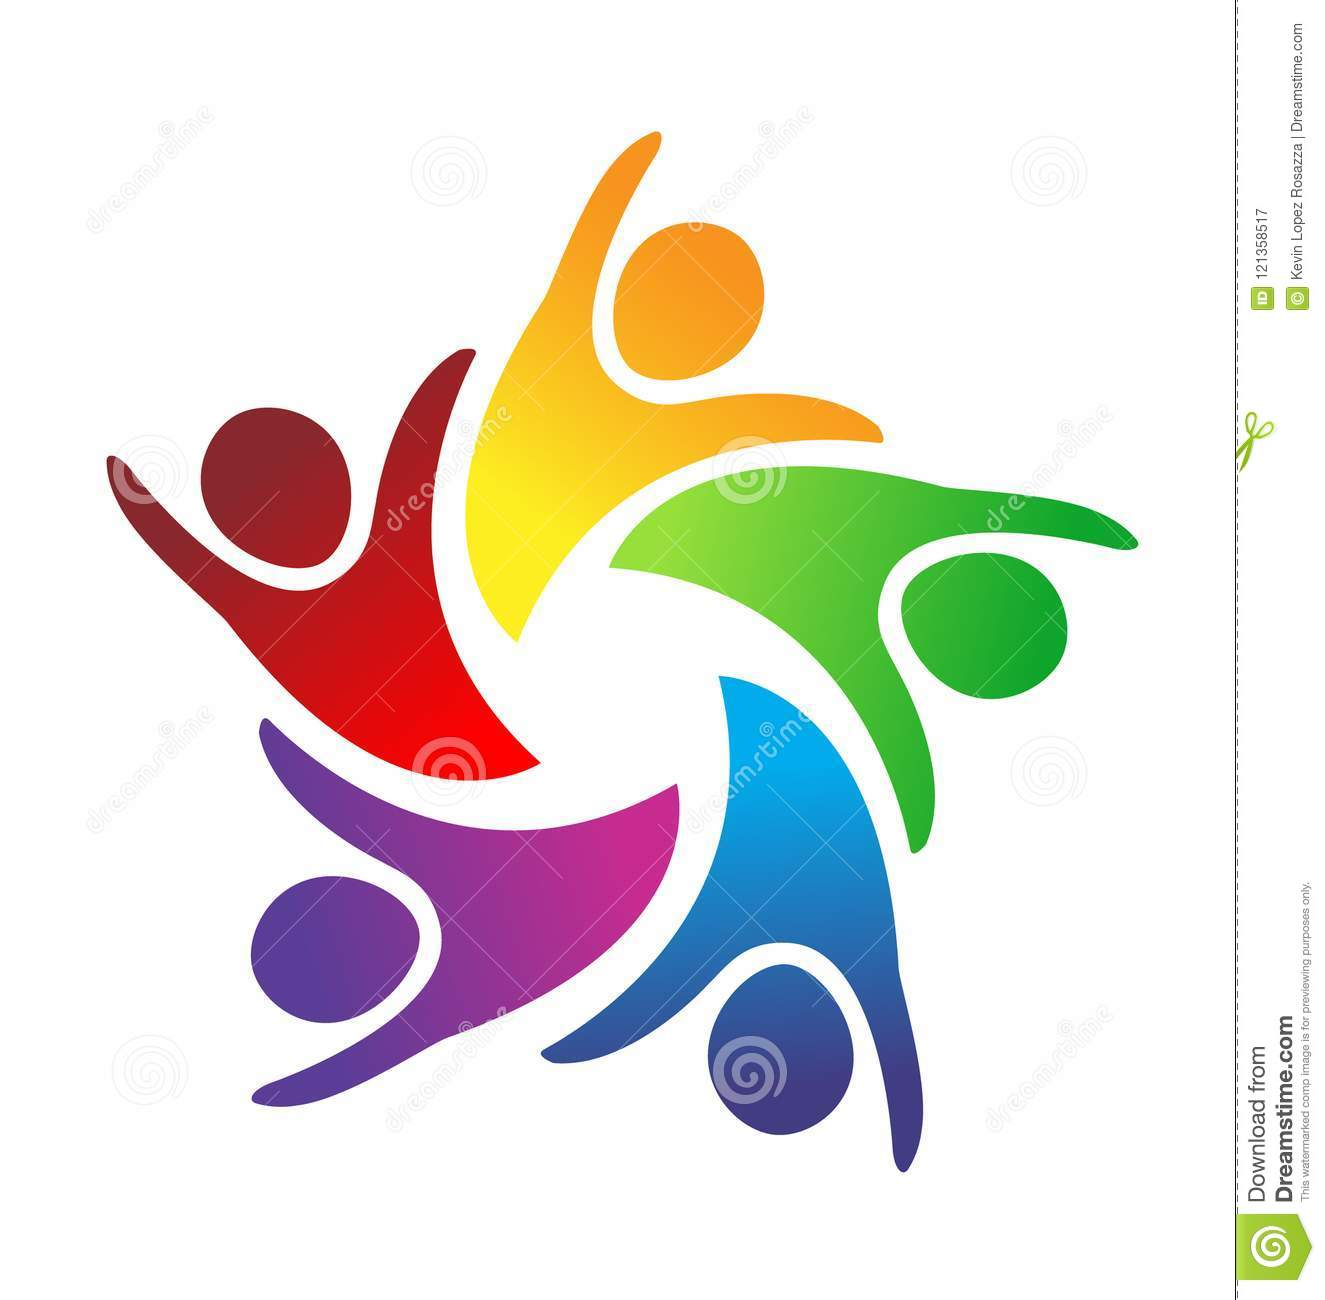 Excited Teamwork Friends People Logo Vector Stock Vector